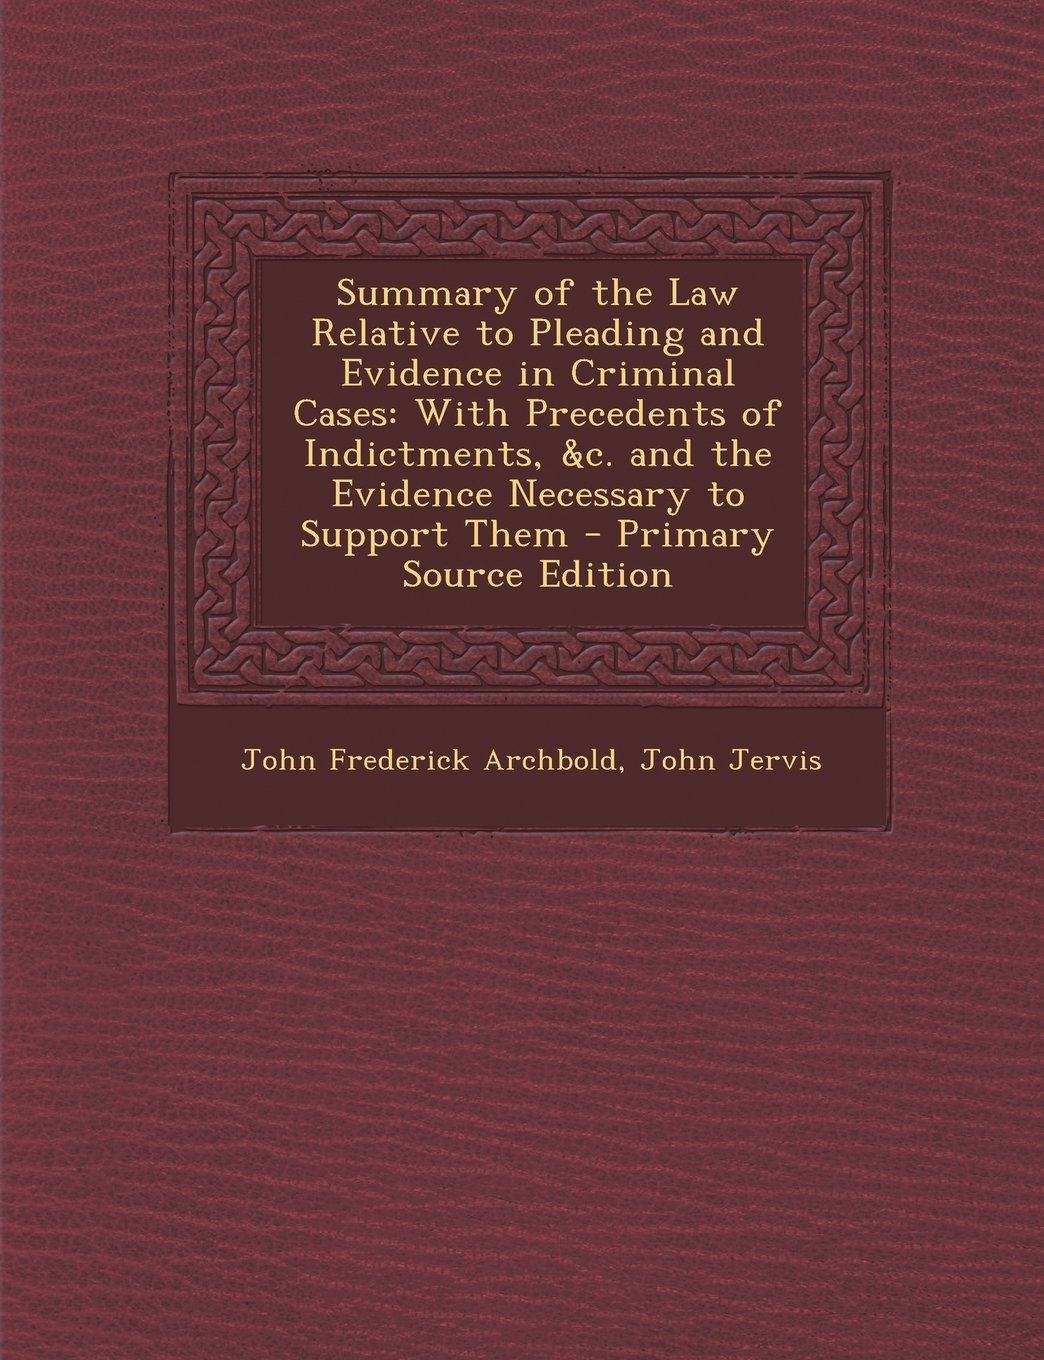 Summary of the Law Relative to Pleading and Evidence in Criminal Cases: With Precedents of Indictments, &C. and the Evidence Necessary to Support Them PDF